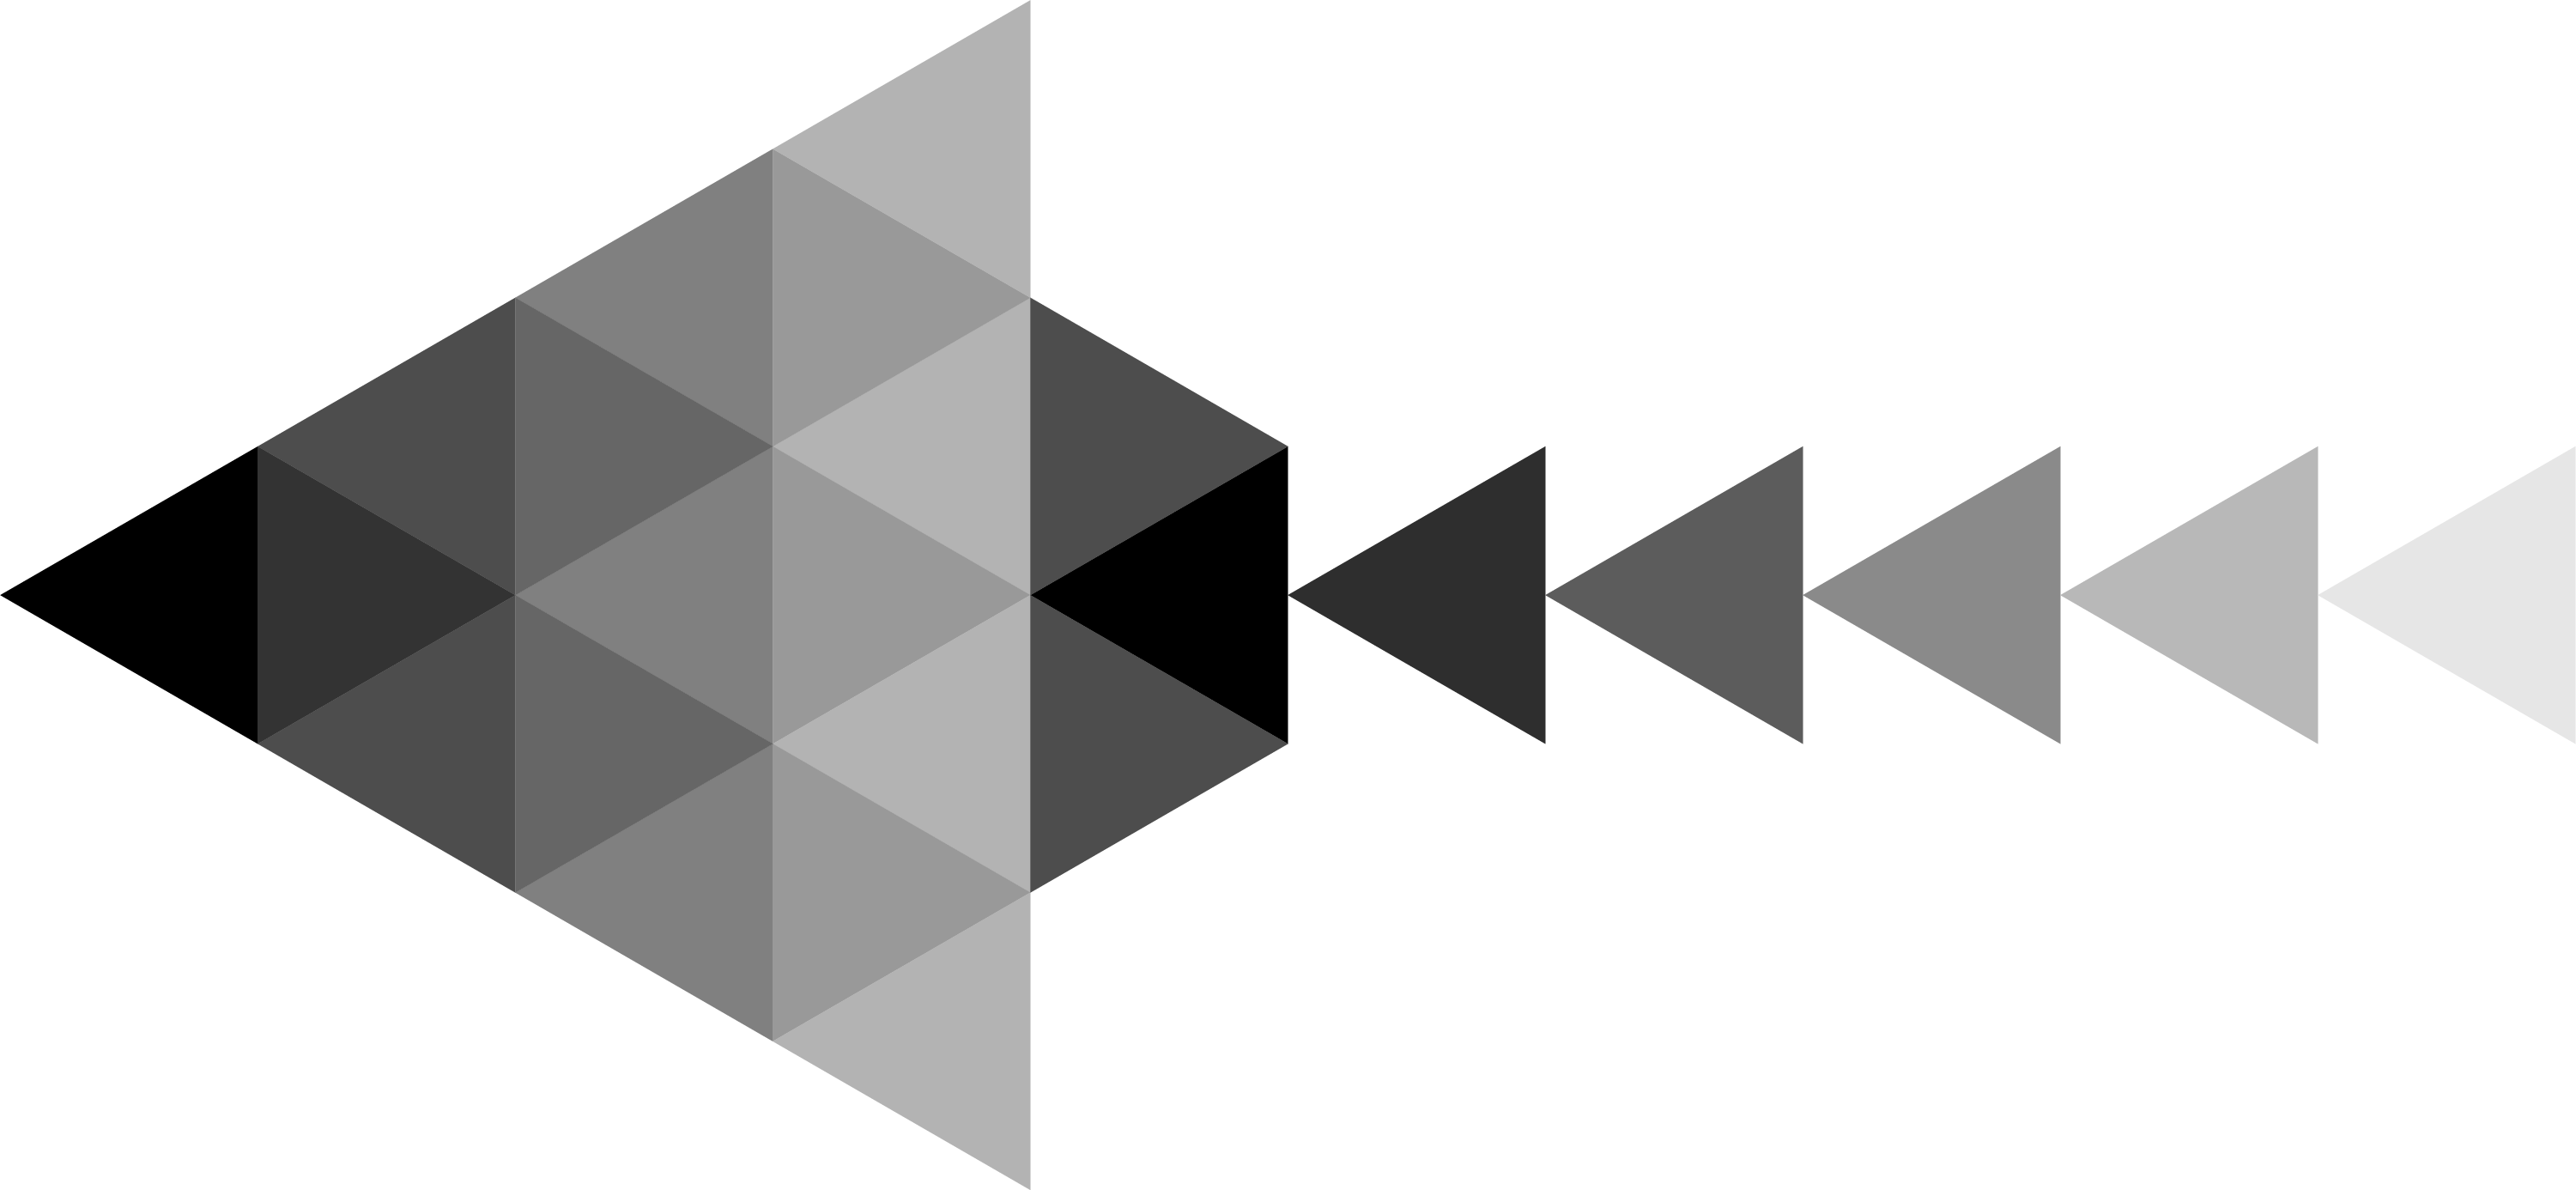 Graphic arrow graphic transparent stock Grey Arrow Black and white - Gray simple splicing arrows 3001*1386 ... graphic transparent stock